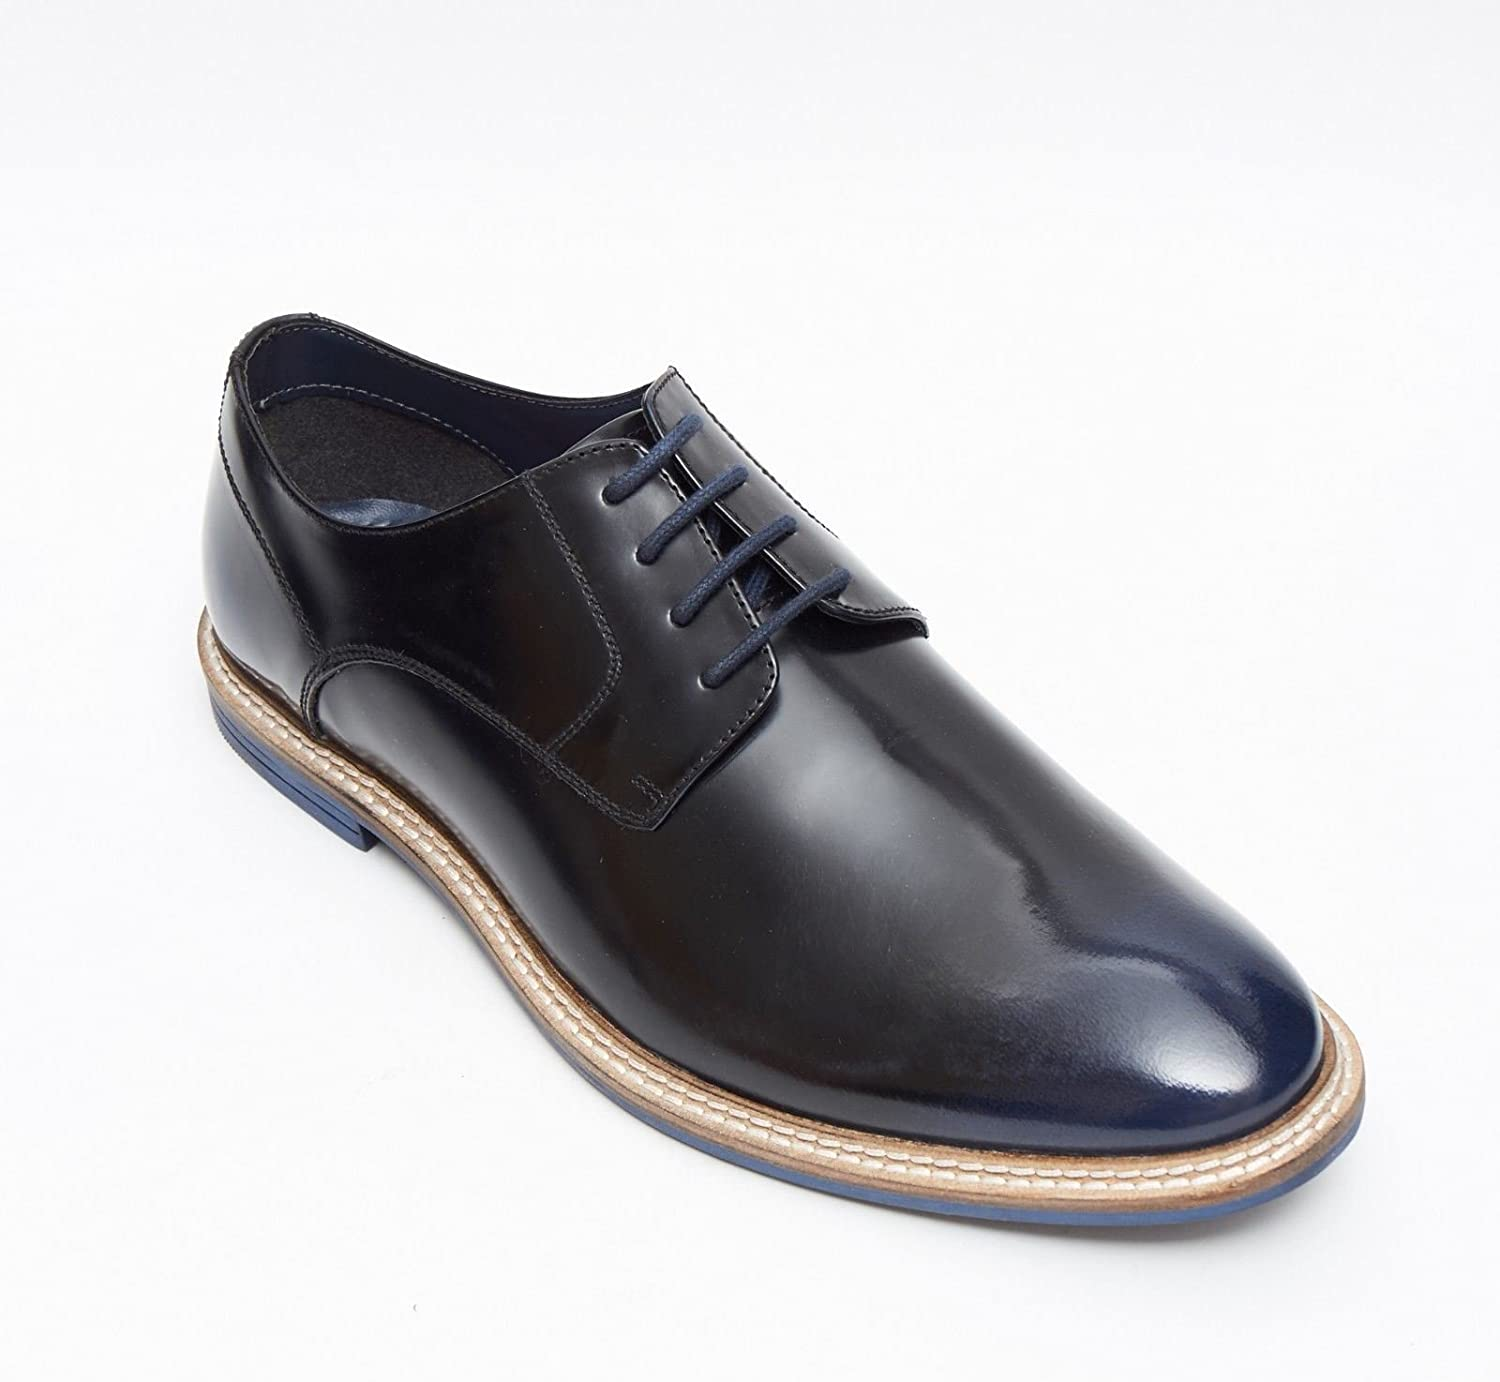 Lucini Formal Men bluee Navy Leather Formal Lace-Up shoes Wedding Office